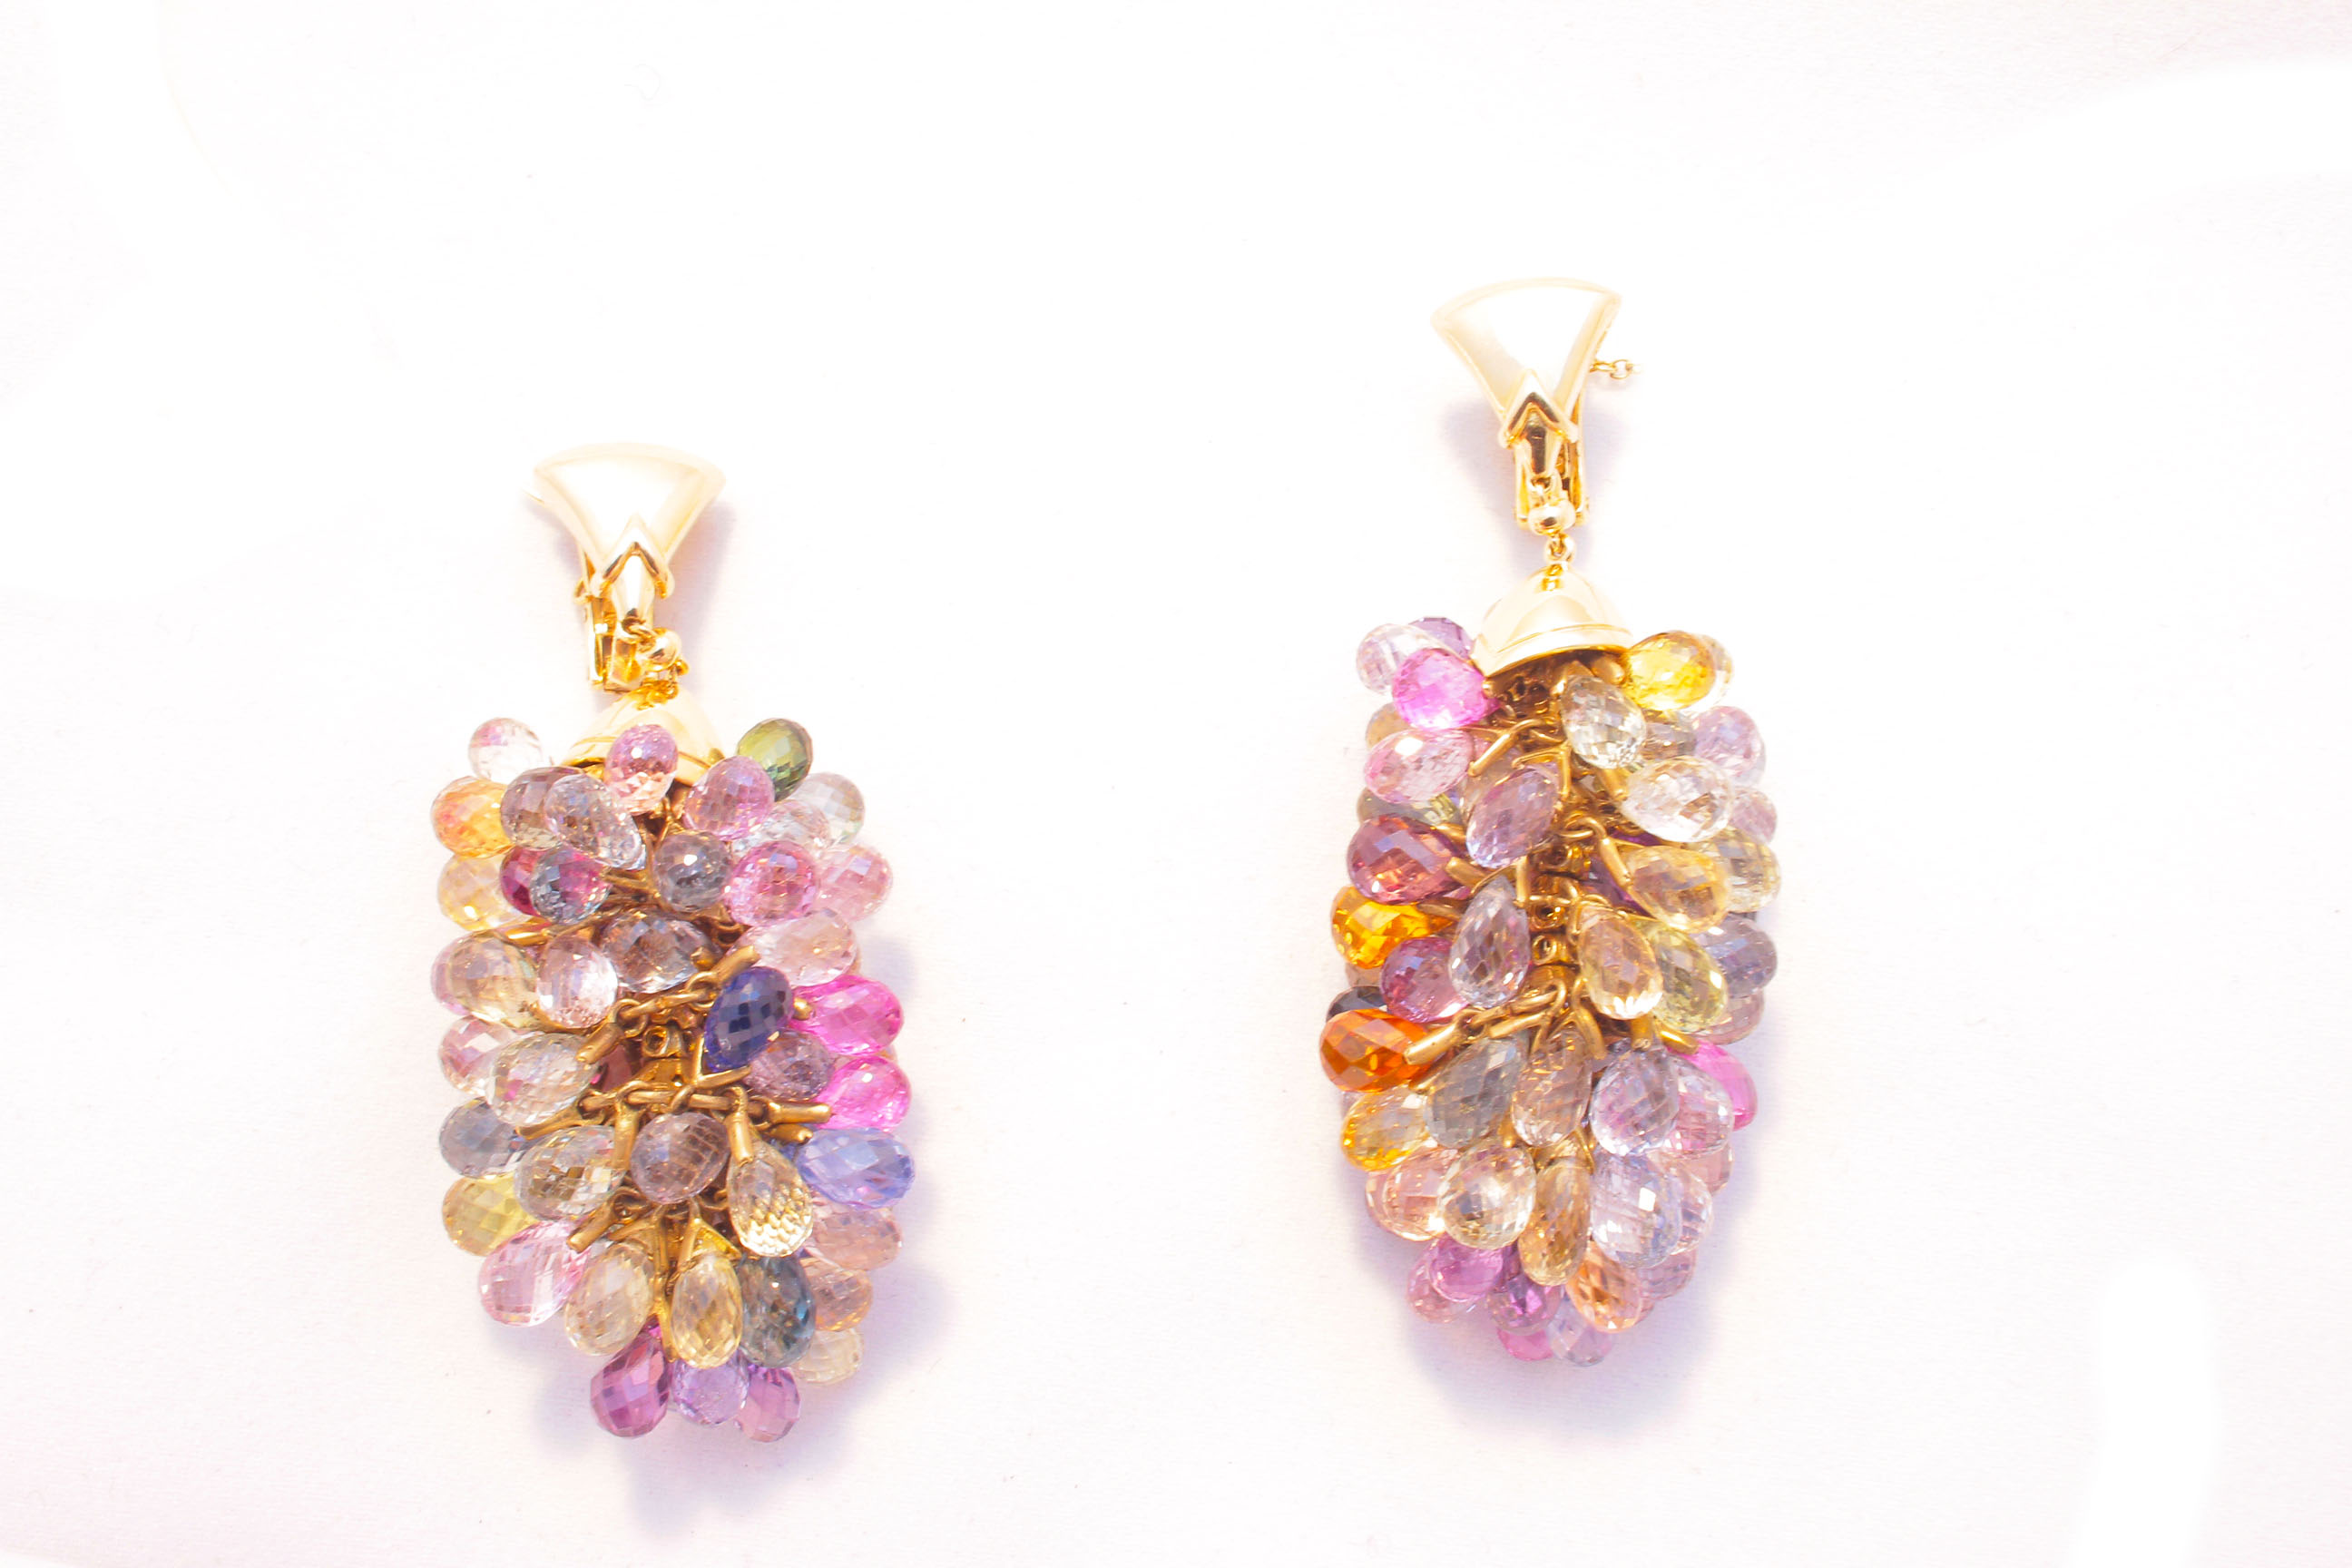 sapphire in earrings the gemstone topaz necklace briolette lemon bloom with filled pink jewelry tourmaline design and set gold